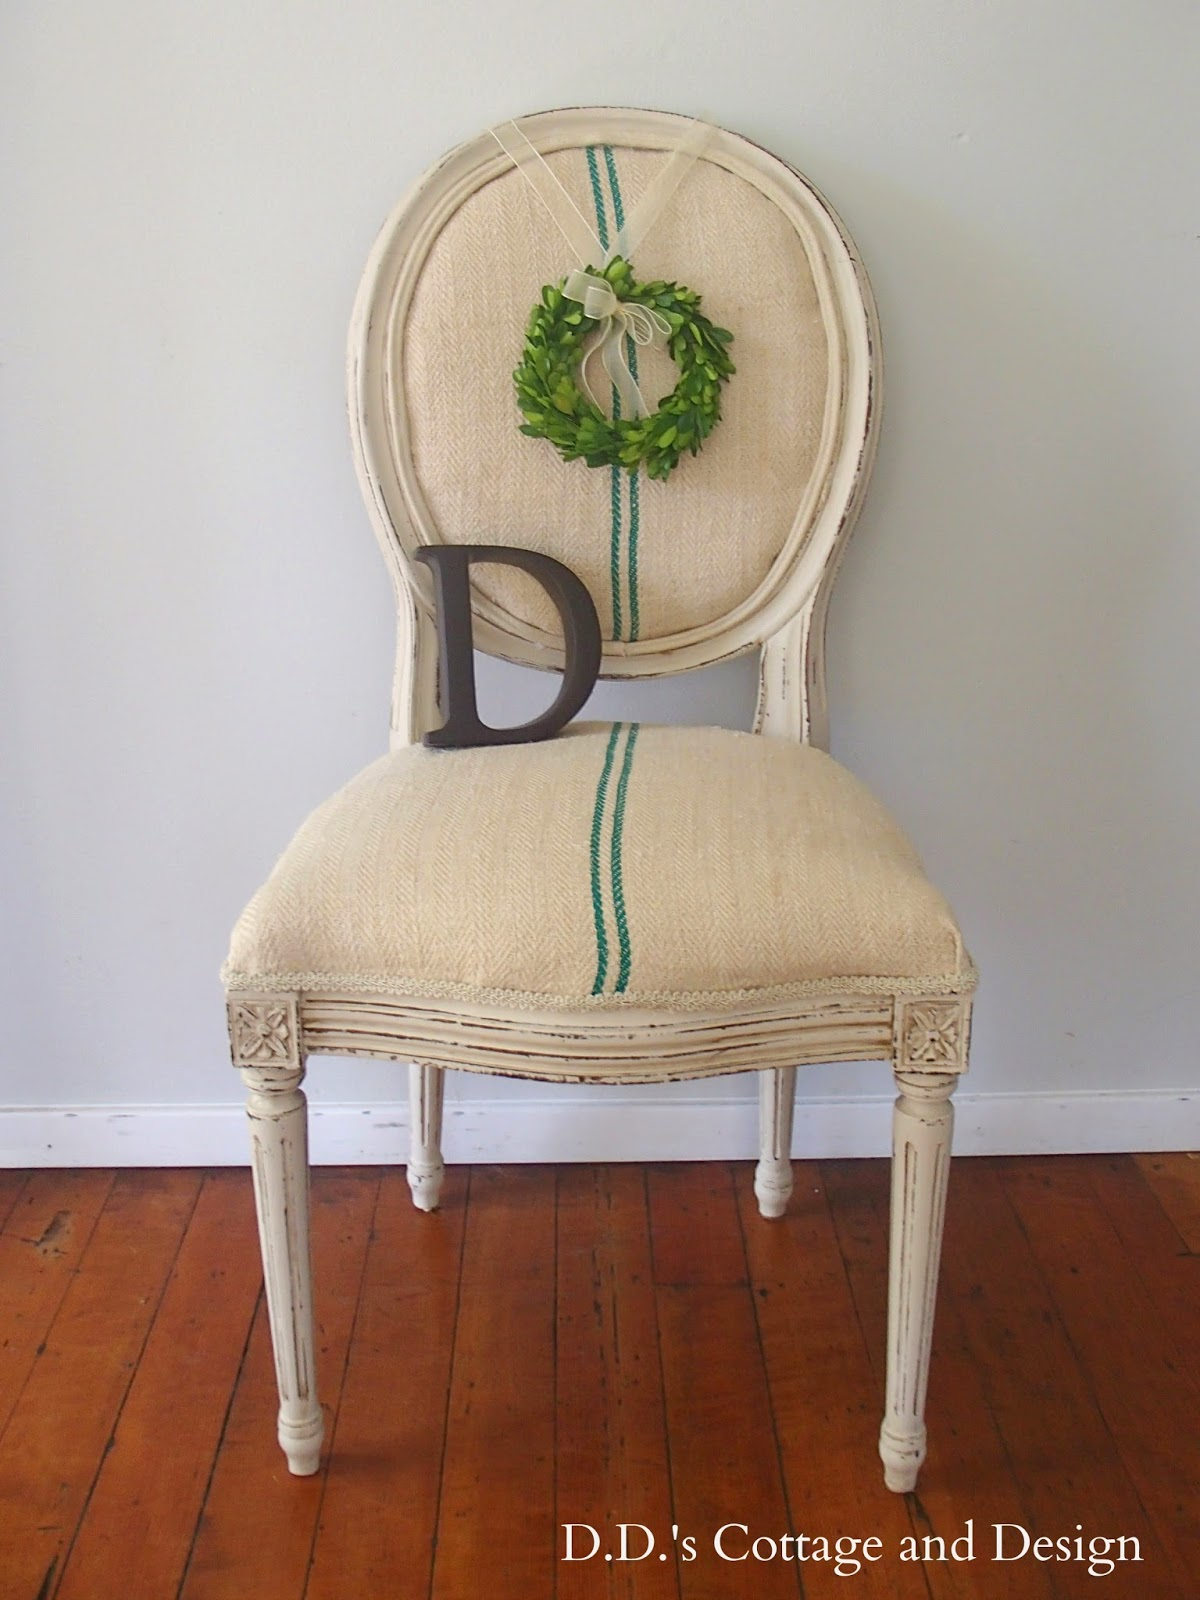 ddscottage chair makeover grain sack